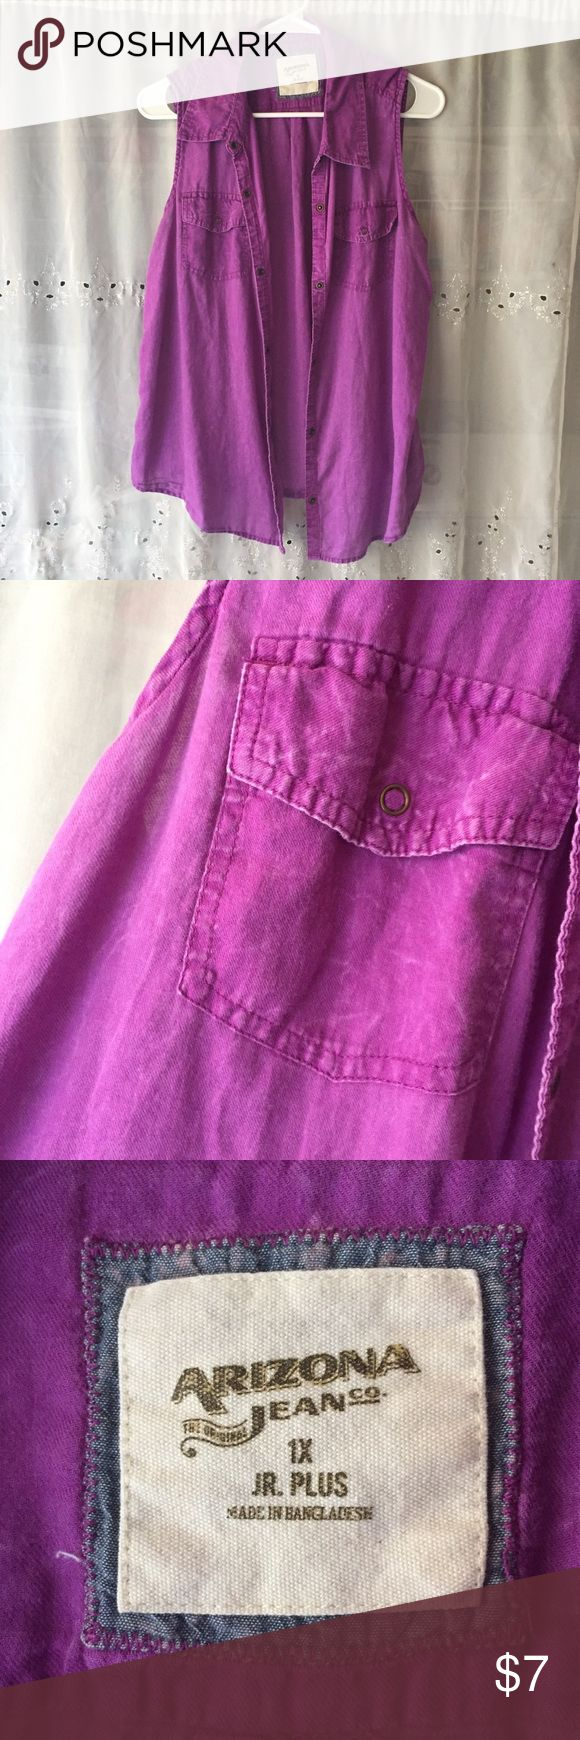 Arizona Jean Purple Vest Jr 1x Purple Vest with vintage wash look, perfect for spring and summer!  Brand: Arizona Jean Company  Size: junior 1x  Material: 100% cotton  Care:machine wash cold Very good condition condition,  From a pet free smoke free home Arizona Jean Company Tops Blouses